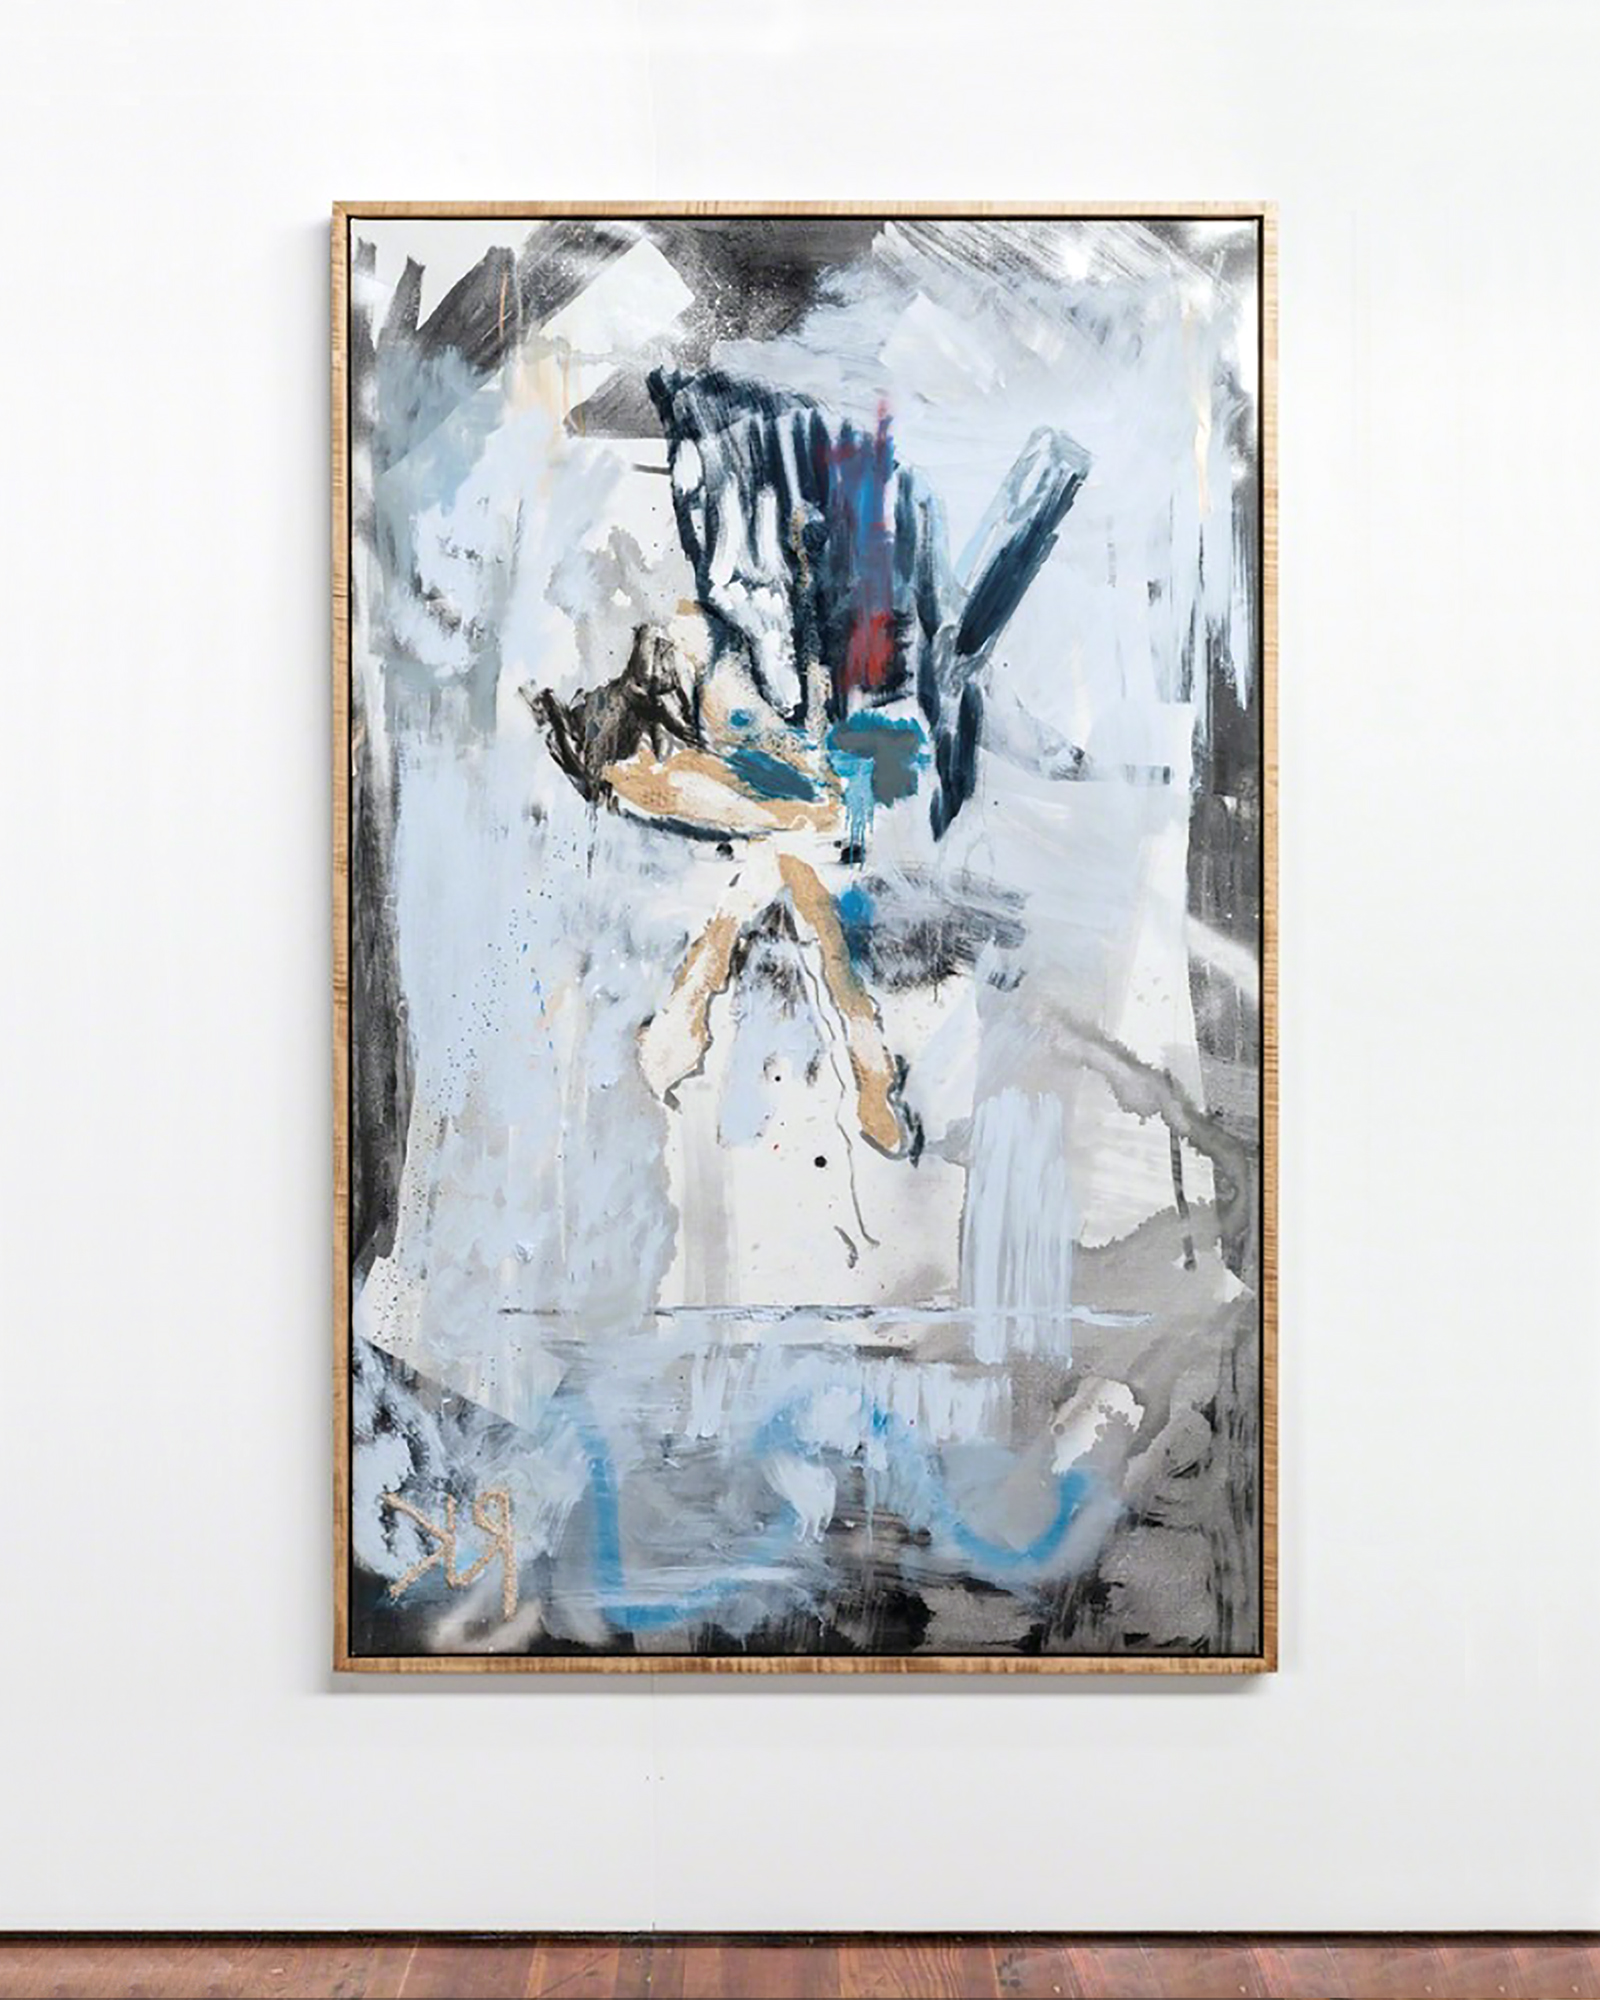 Rosy Kyser-Leitmotif-2019-Aluminum enamel, oil, spray paint, charcoal, and sawdust on oil primed linen-78 in ×50 in-98.1 cm × 127 cm.jpg